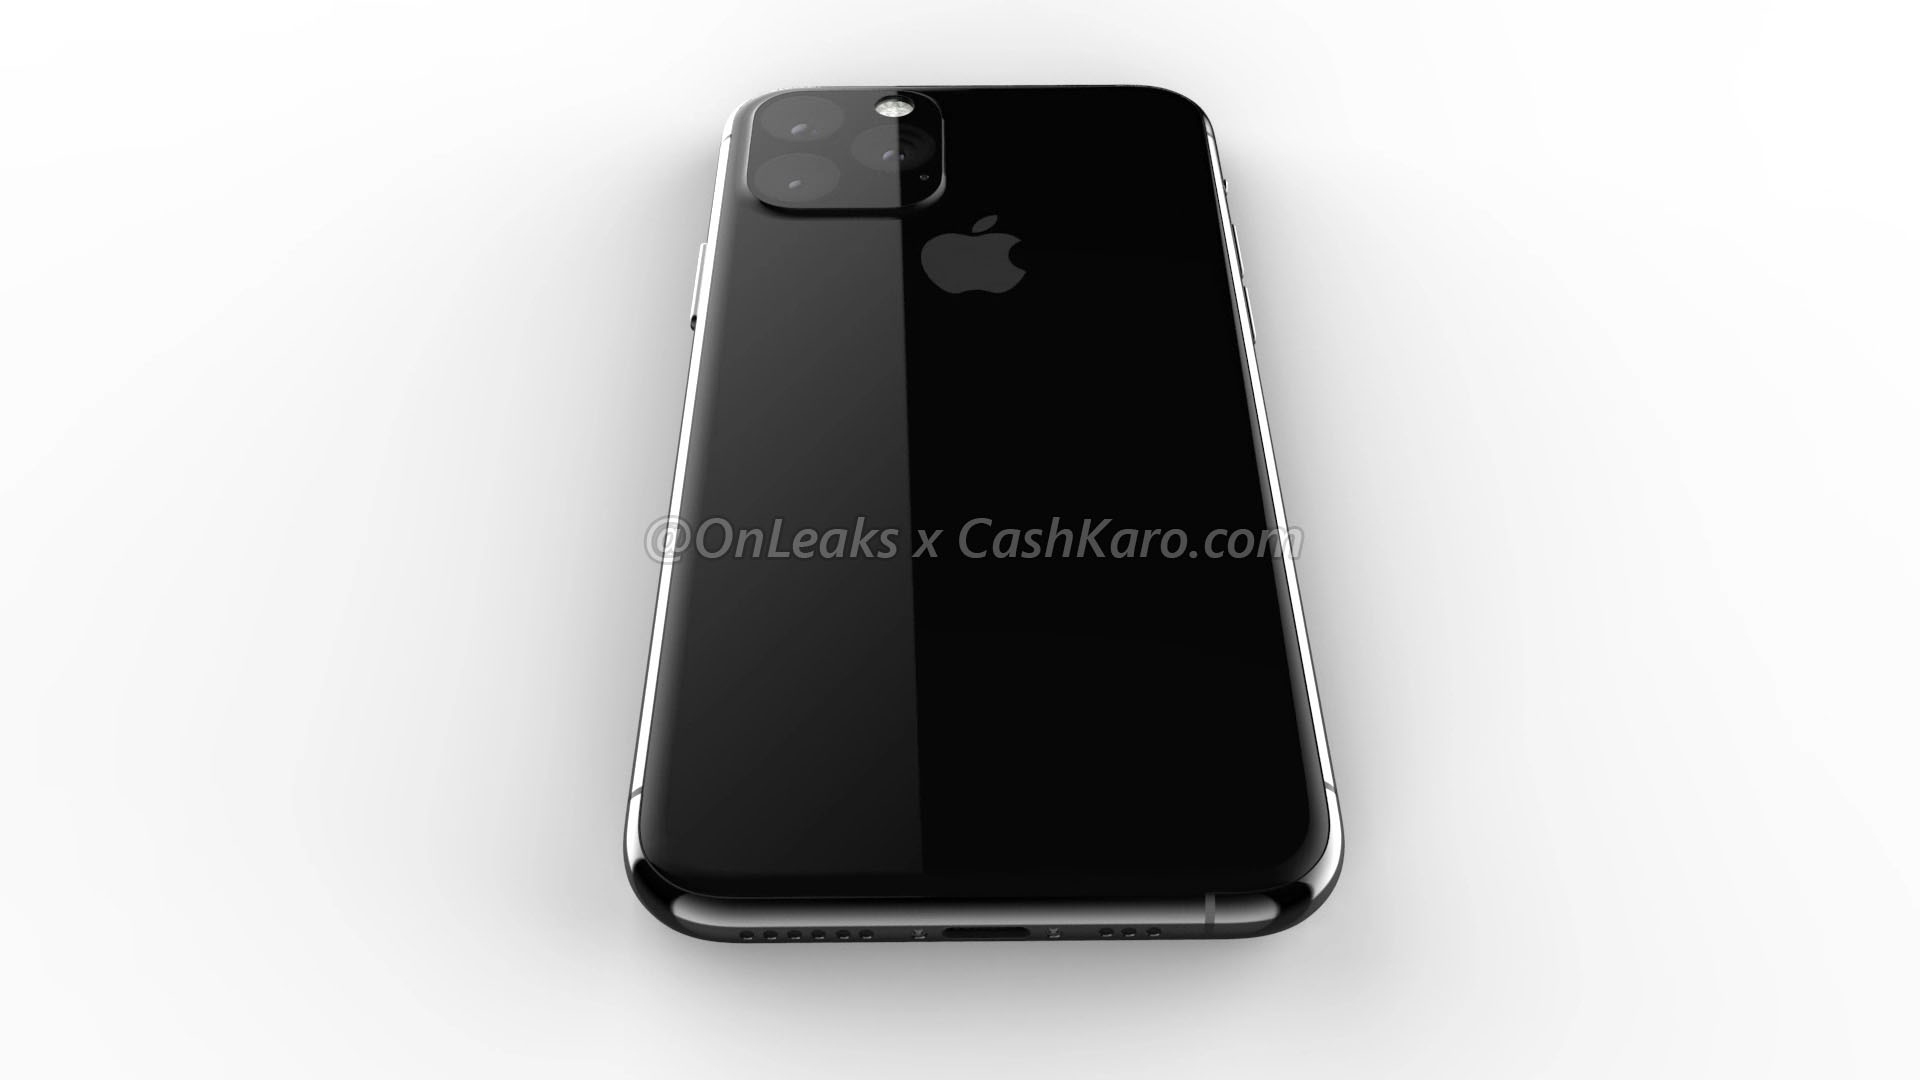 Iphone Xi Renders New Back Glass Design Img 3